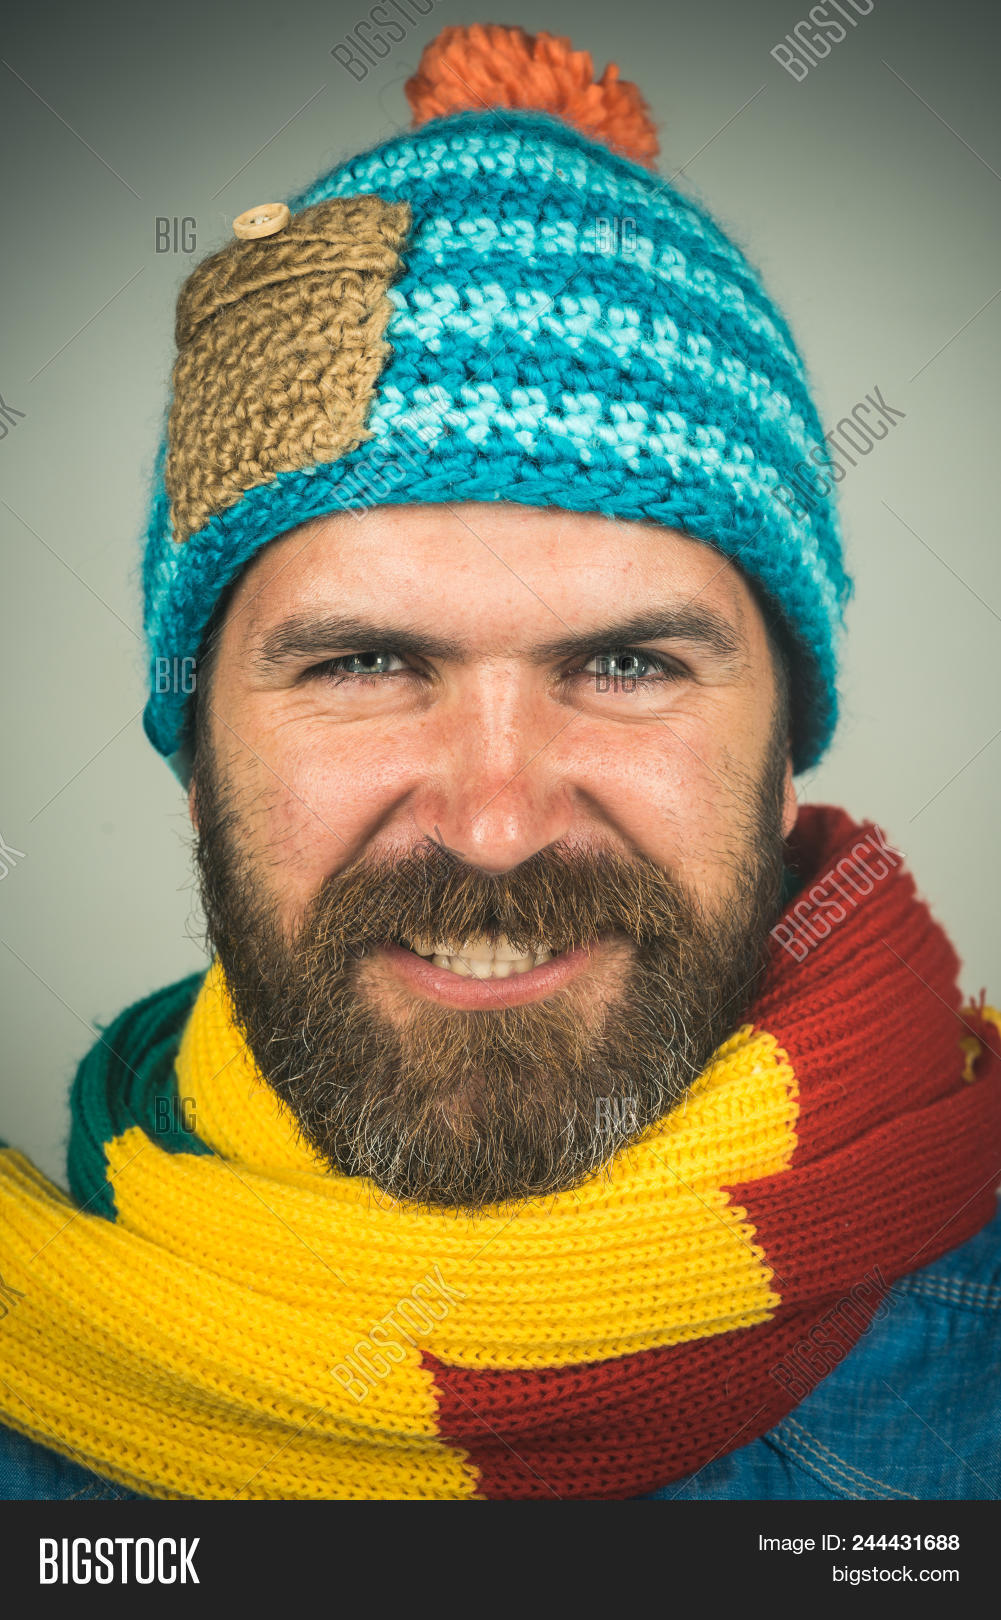 attractive,autumn,beard,bearded,beautiful,cap,casual,cheerful,clothes,clothing,cold,confident,cool,european,face,fall,fashion,fashionable,fun,guy,handsome,happiness,happy,hat,hipster,holiday,joy,lifestyle,male,man,men,model,modern,mustache,portrait,scarf,season,sexy,smile,smiling,snow,style,stylish,time,trendy,vogue,warm,wearing,winter,wool